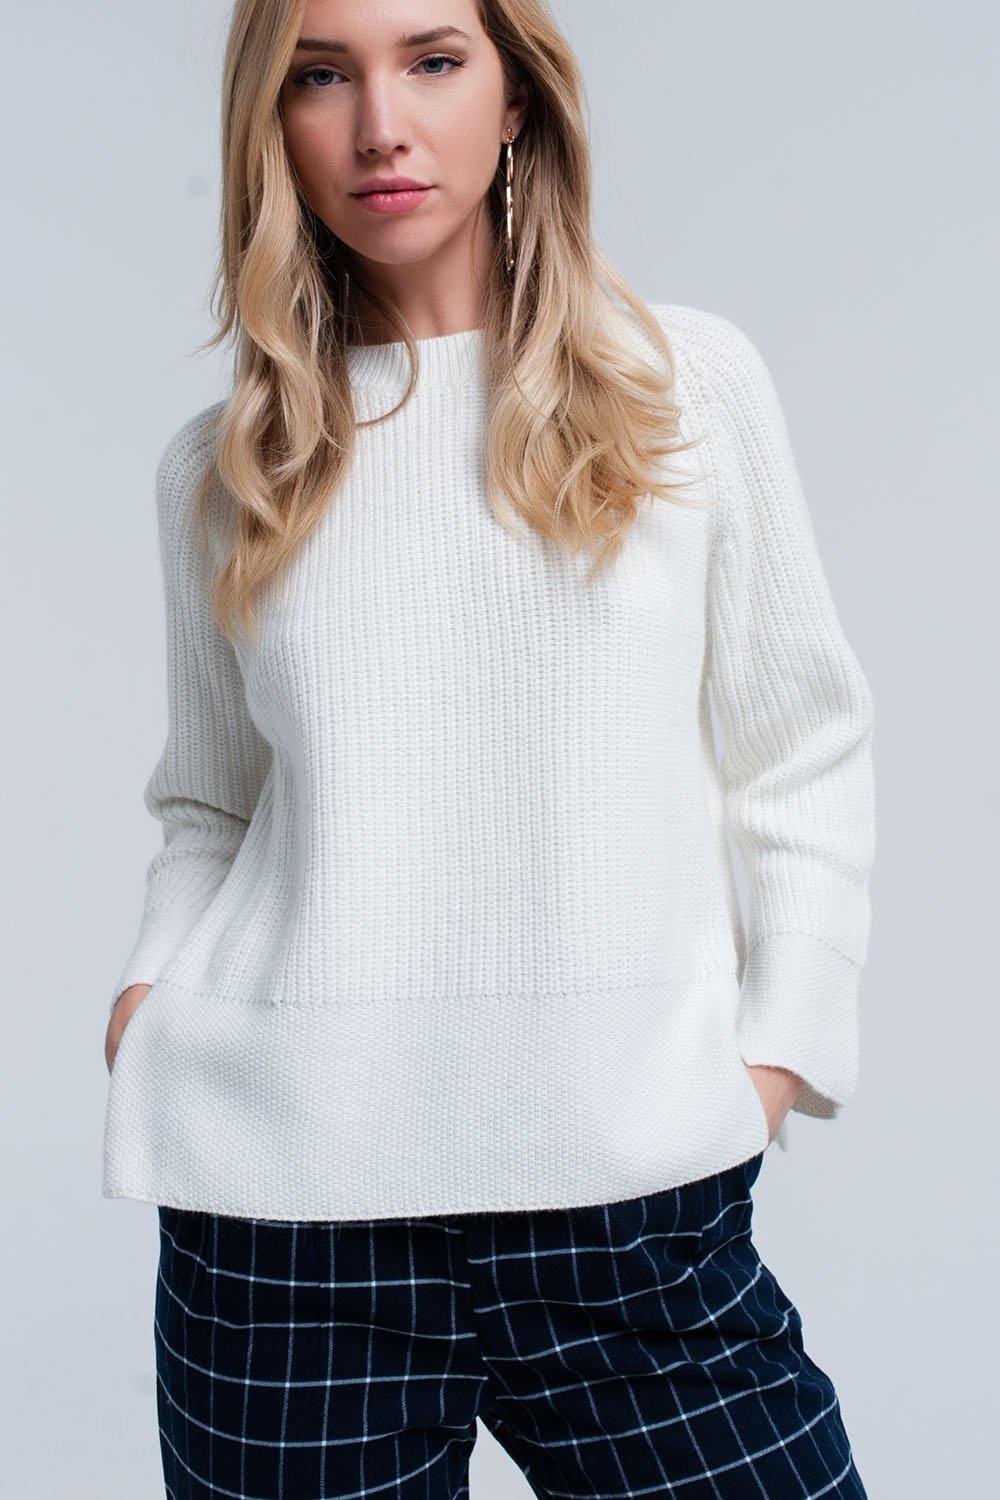 Q2 Cream knitted sweater with open side detail